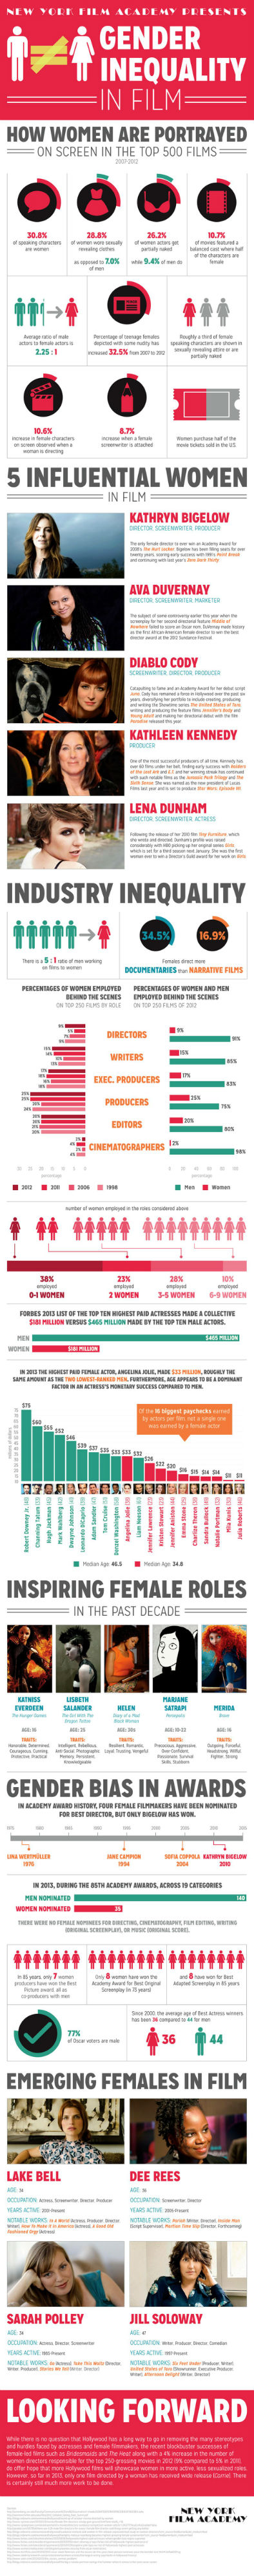 Gender Inequality in Films [Infographic]